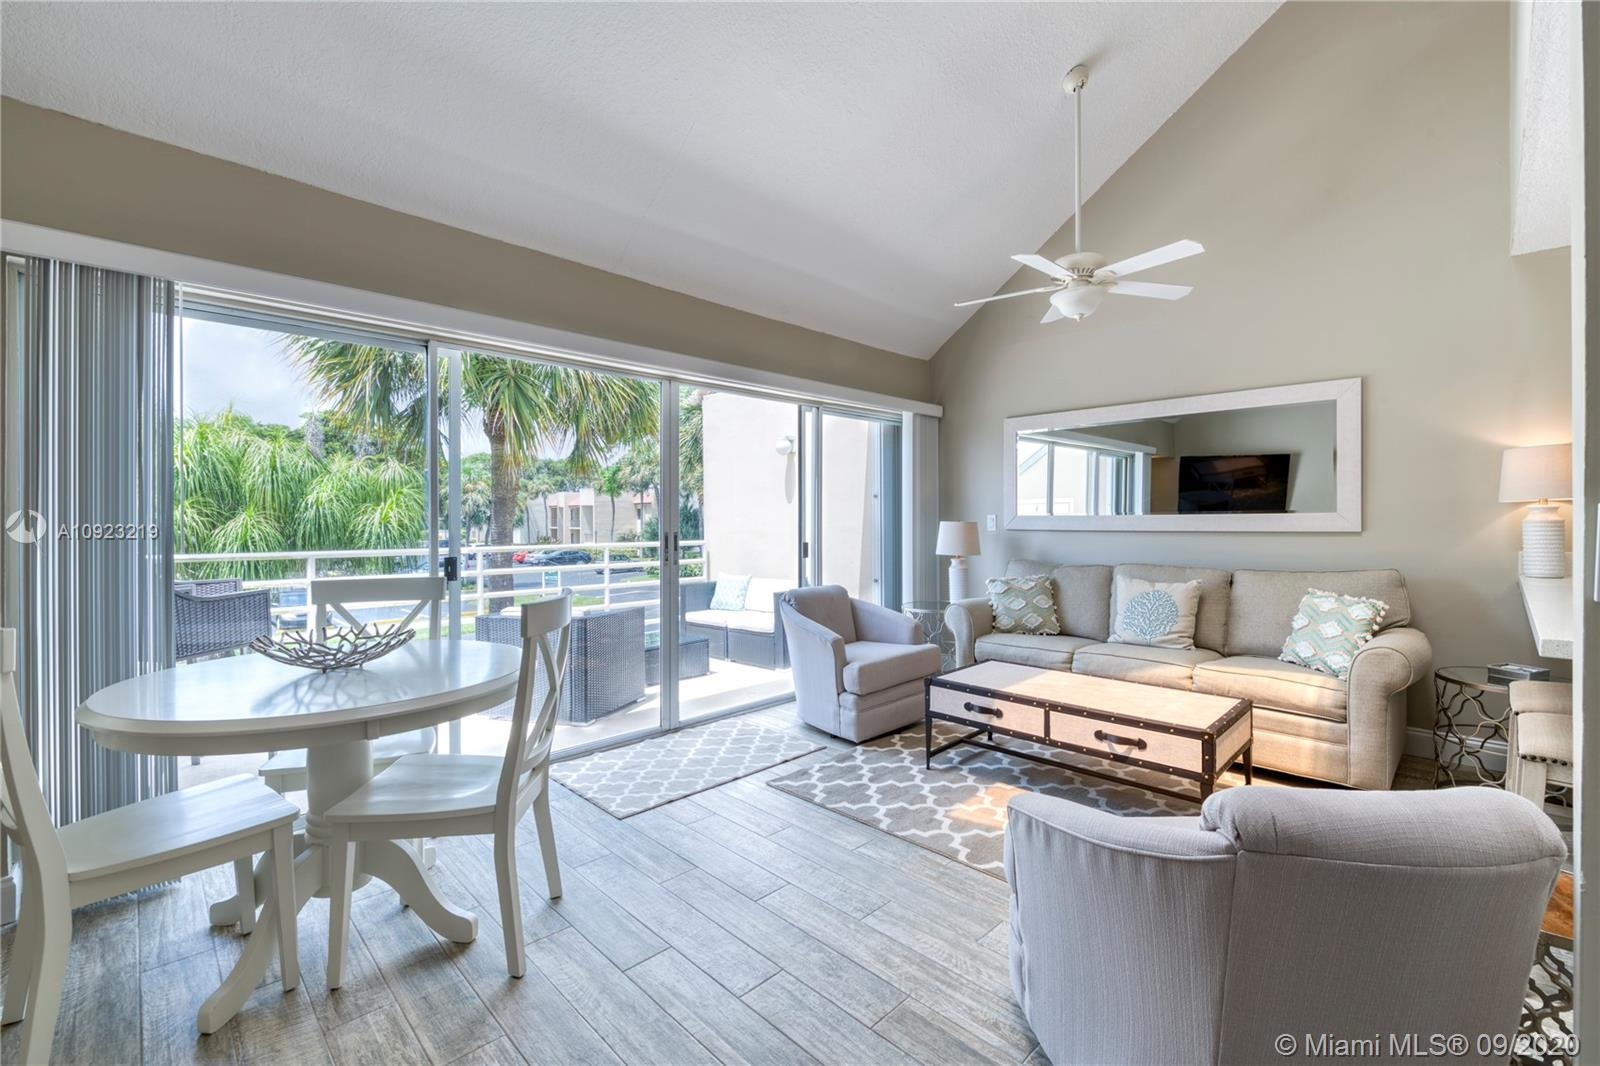 Walk to the gorgeous turquoise waters of Jupiter Beach from this beautifully renovated 2 bed, 2 bath